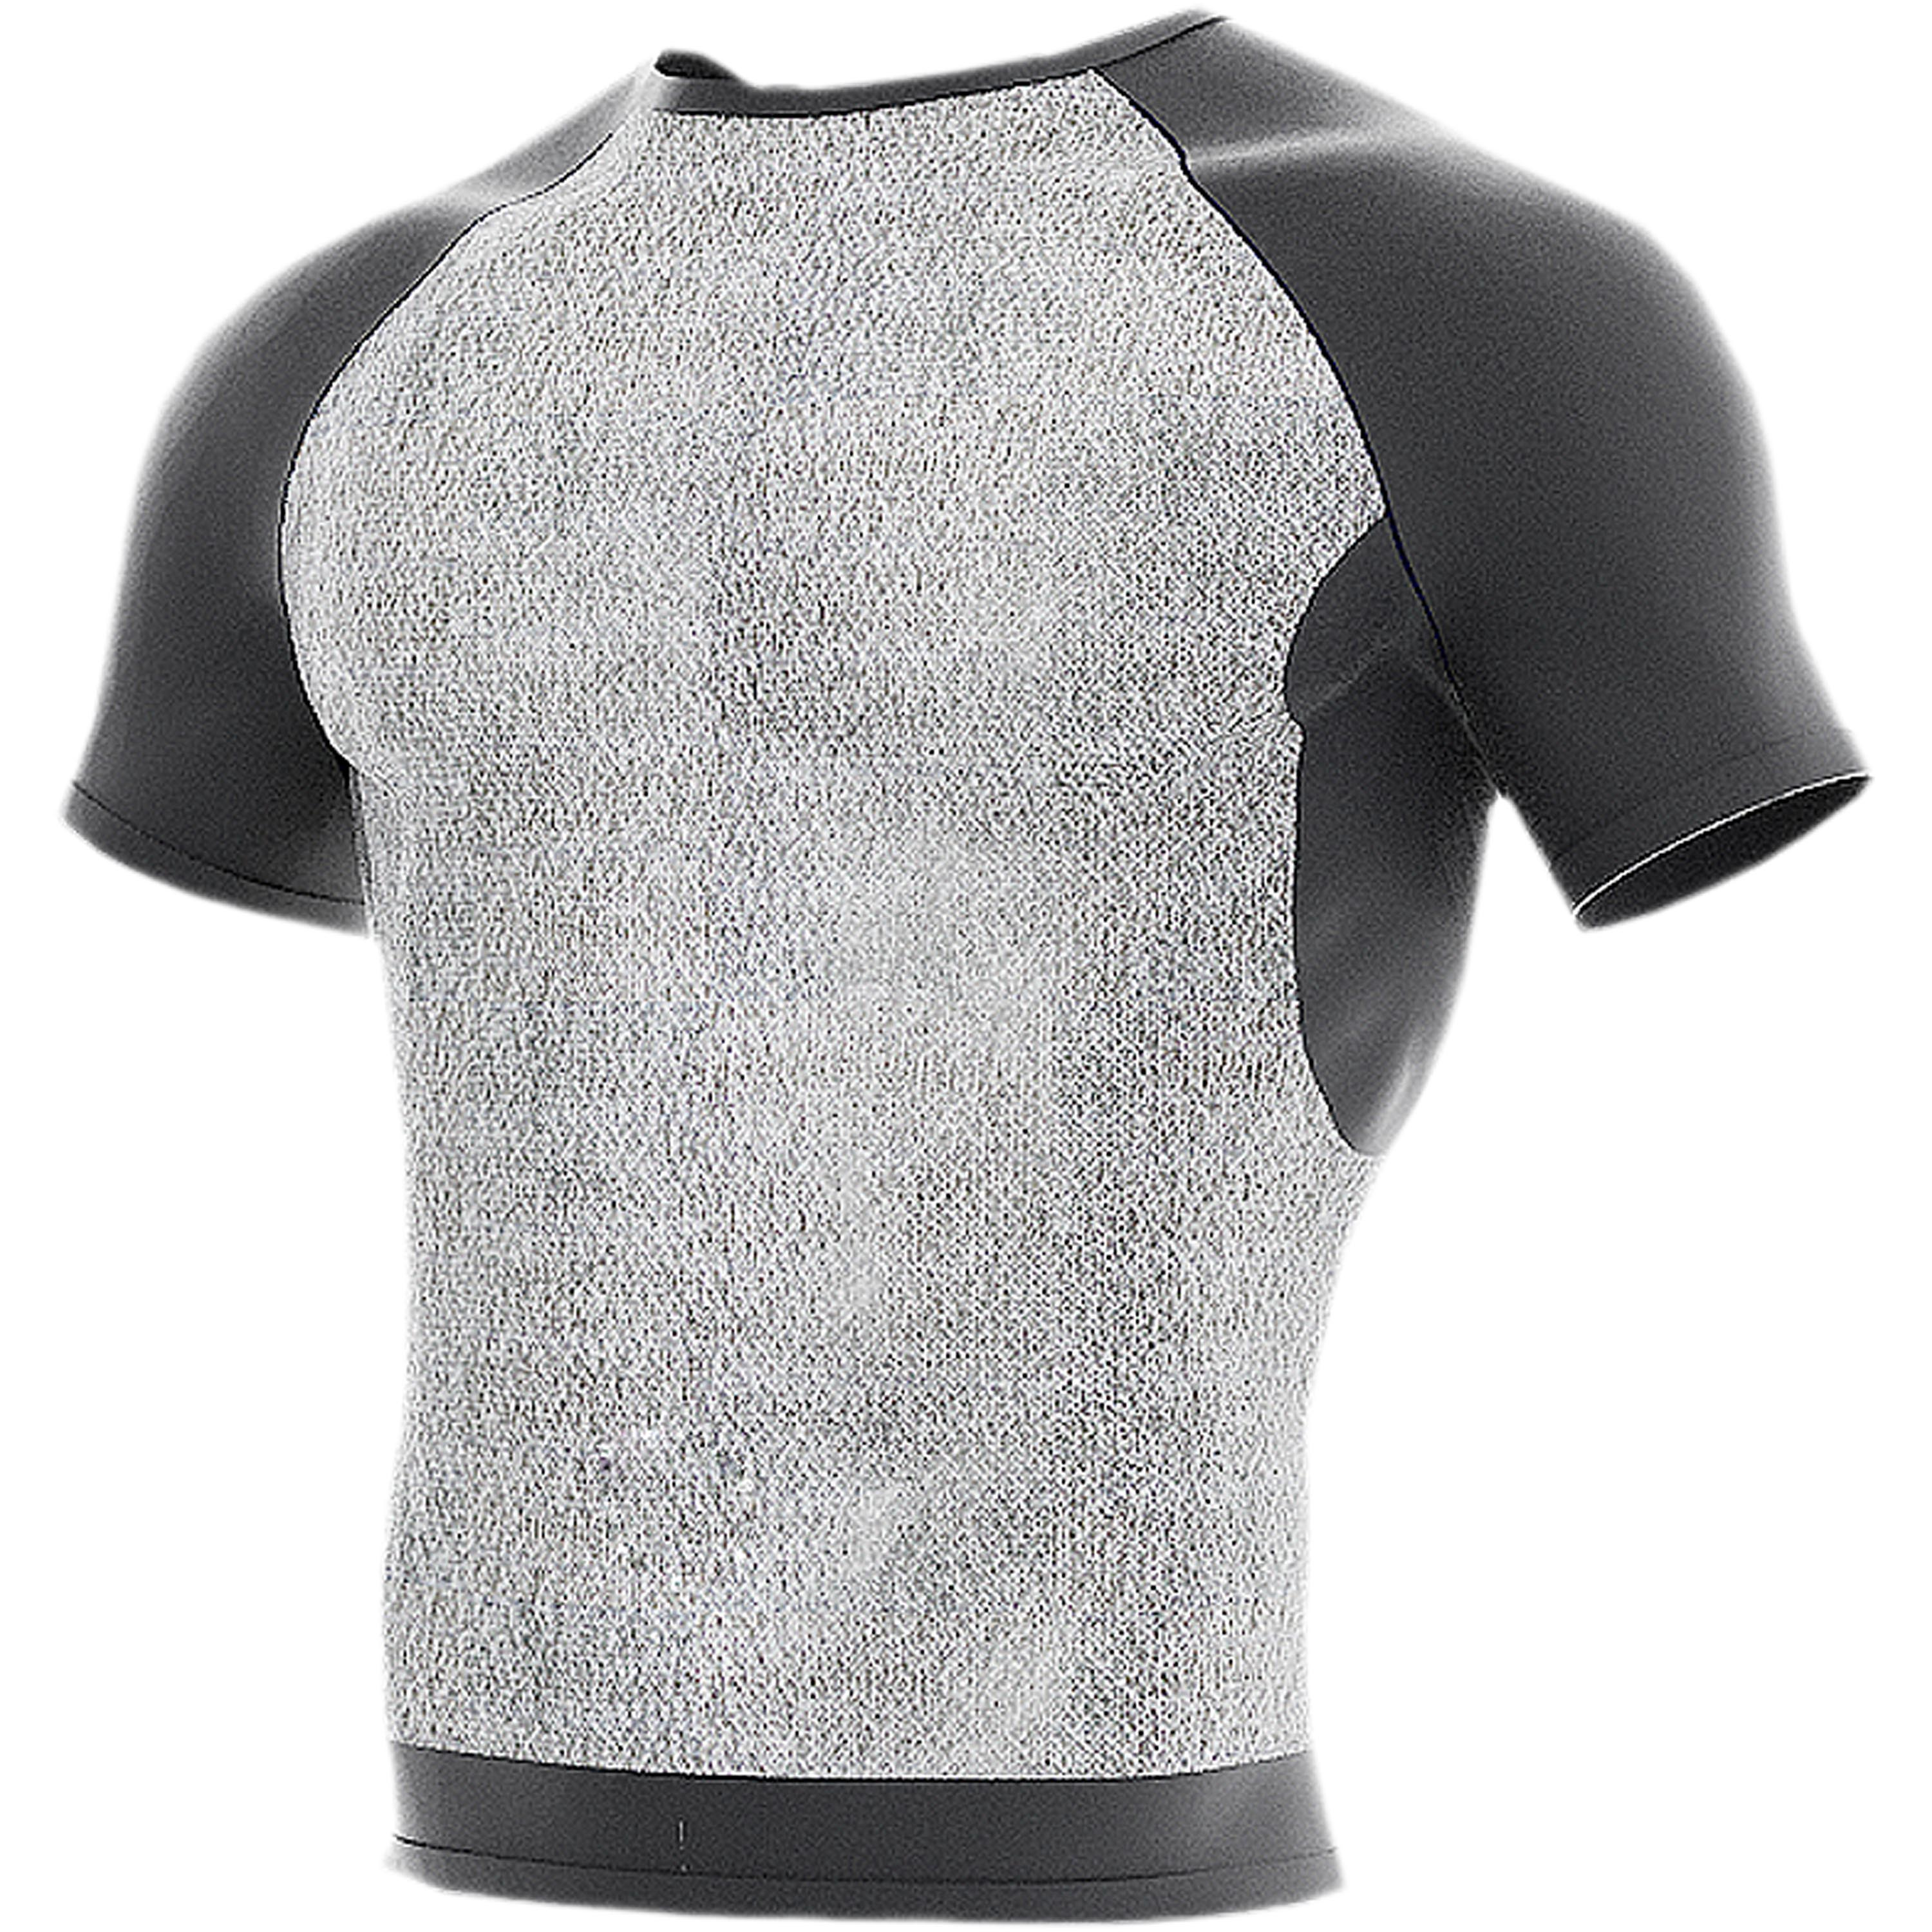 MTP Tactical T-Shirt Cut Resistant